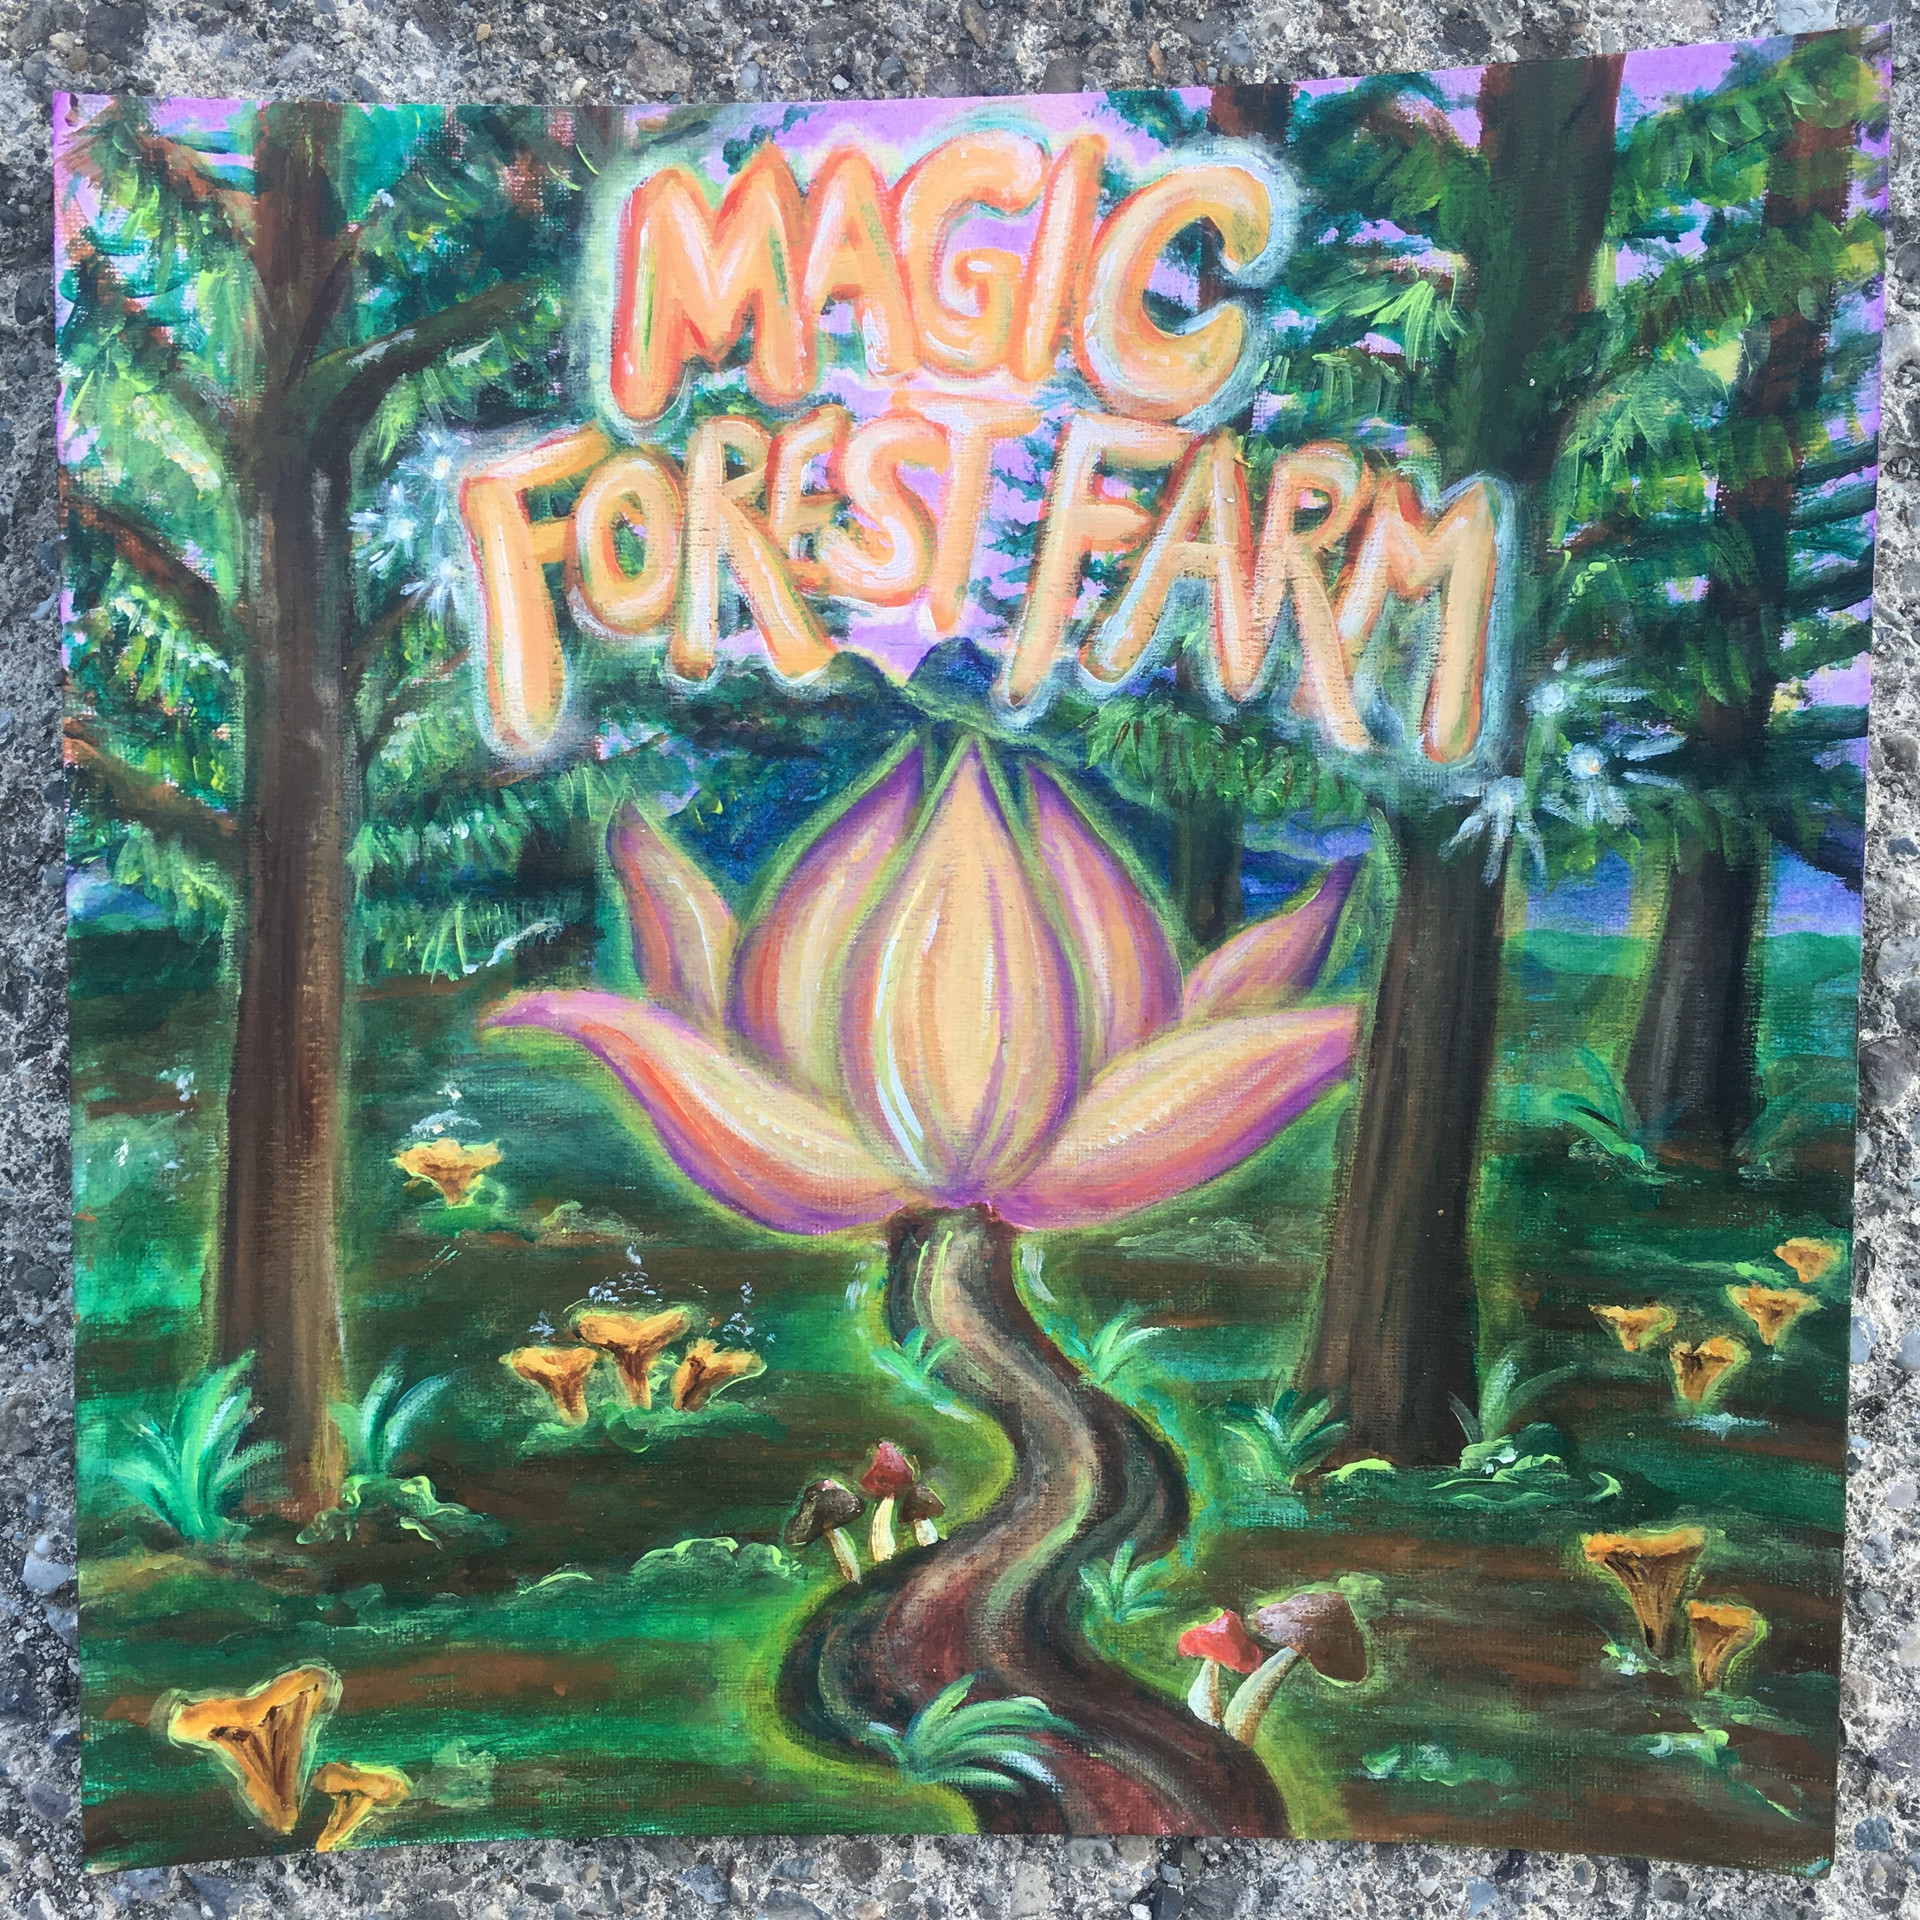 Magic Forest Farm